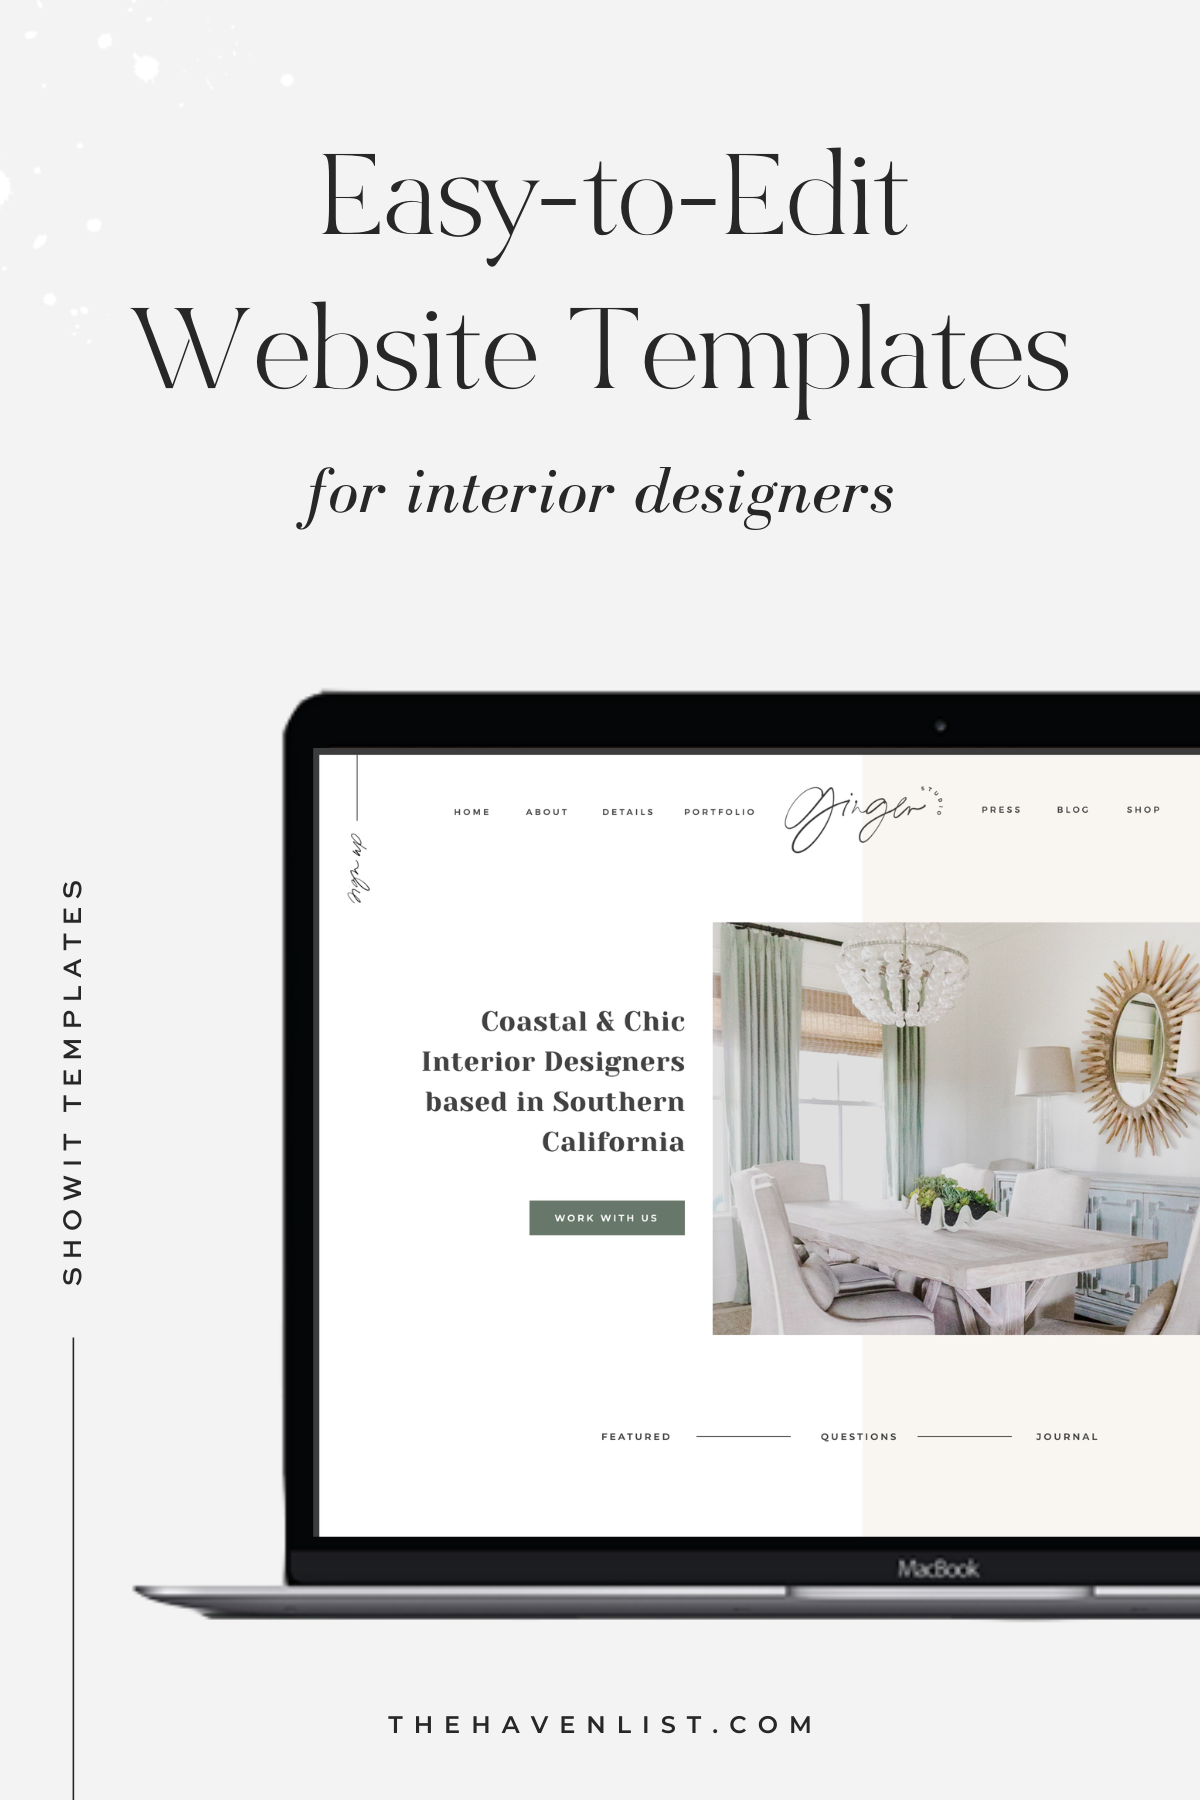 Easy-To-Edit Showit Website Templates and Customizable Website Templates for Interior Designers and Creatives - Stylish Social Media Templates, Website Content Planner & Guide, Showit Website Template, Saffron Avenue, The Haven List